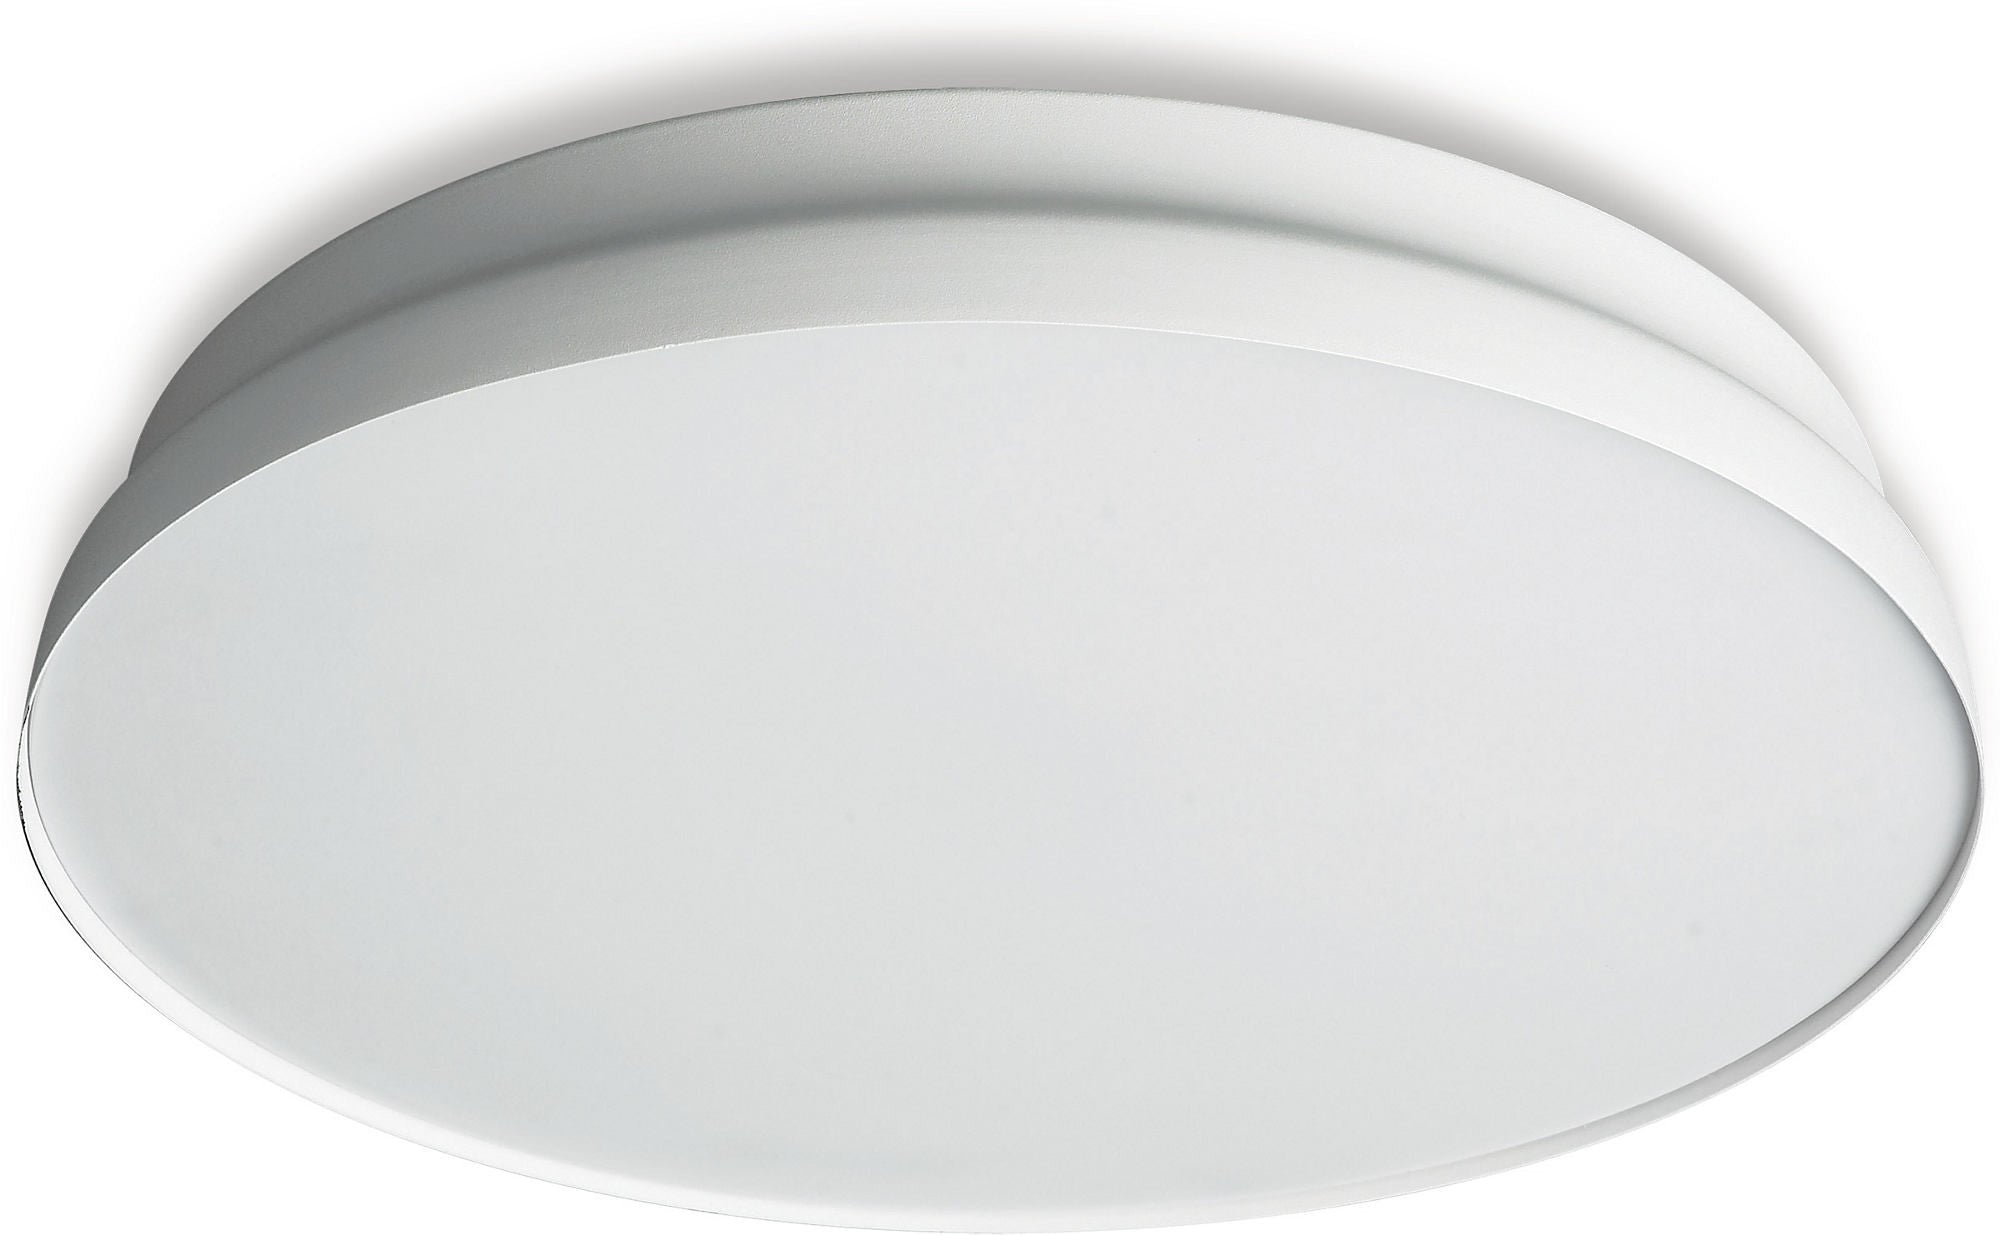 Philips ecomoods ceiling light 80 energy saving philips light philips ecomoods ceiling light aloadofball